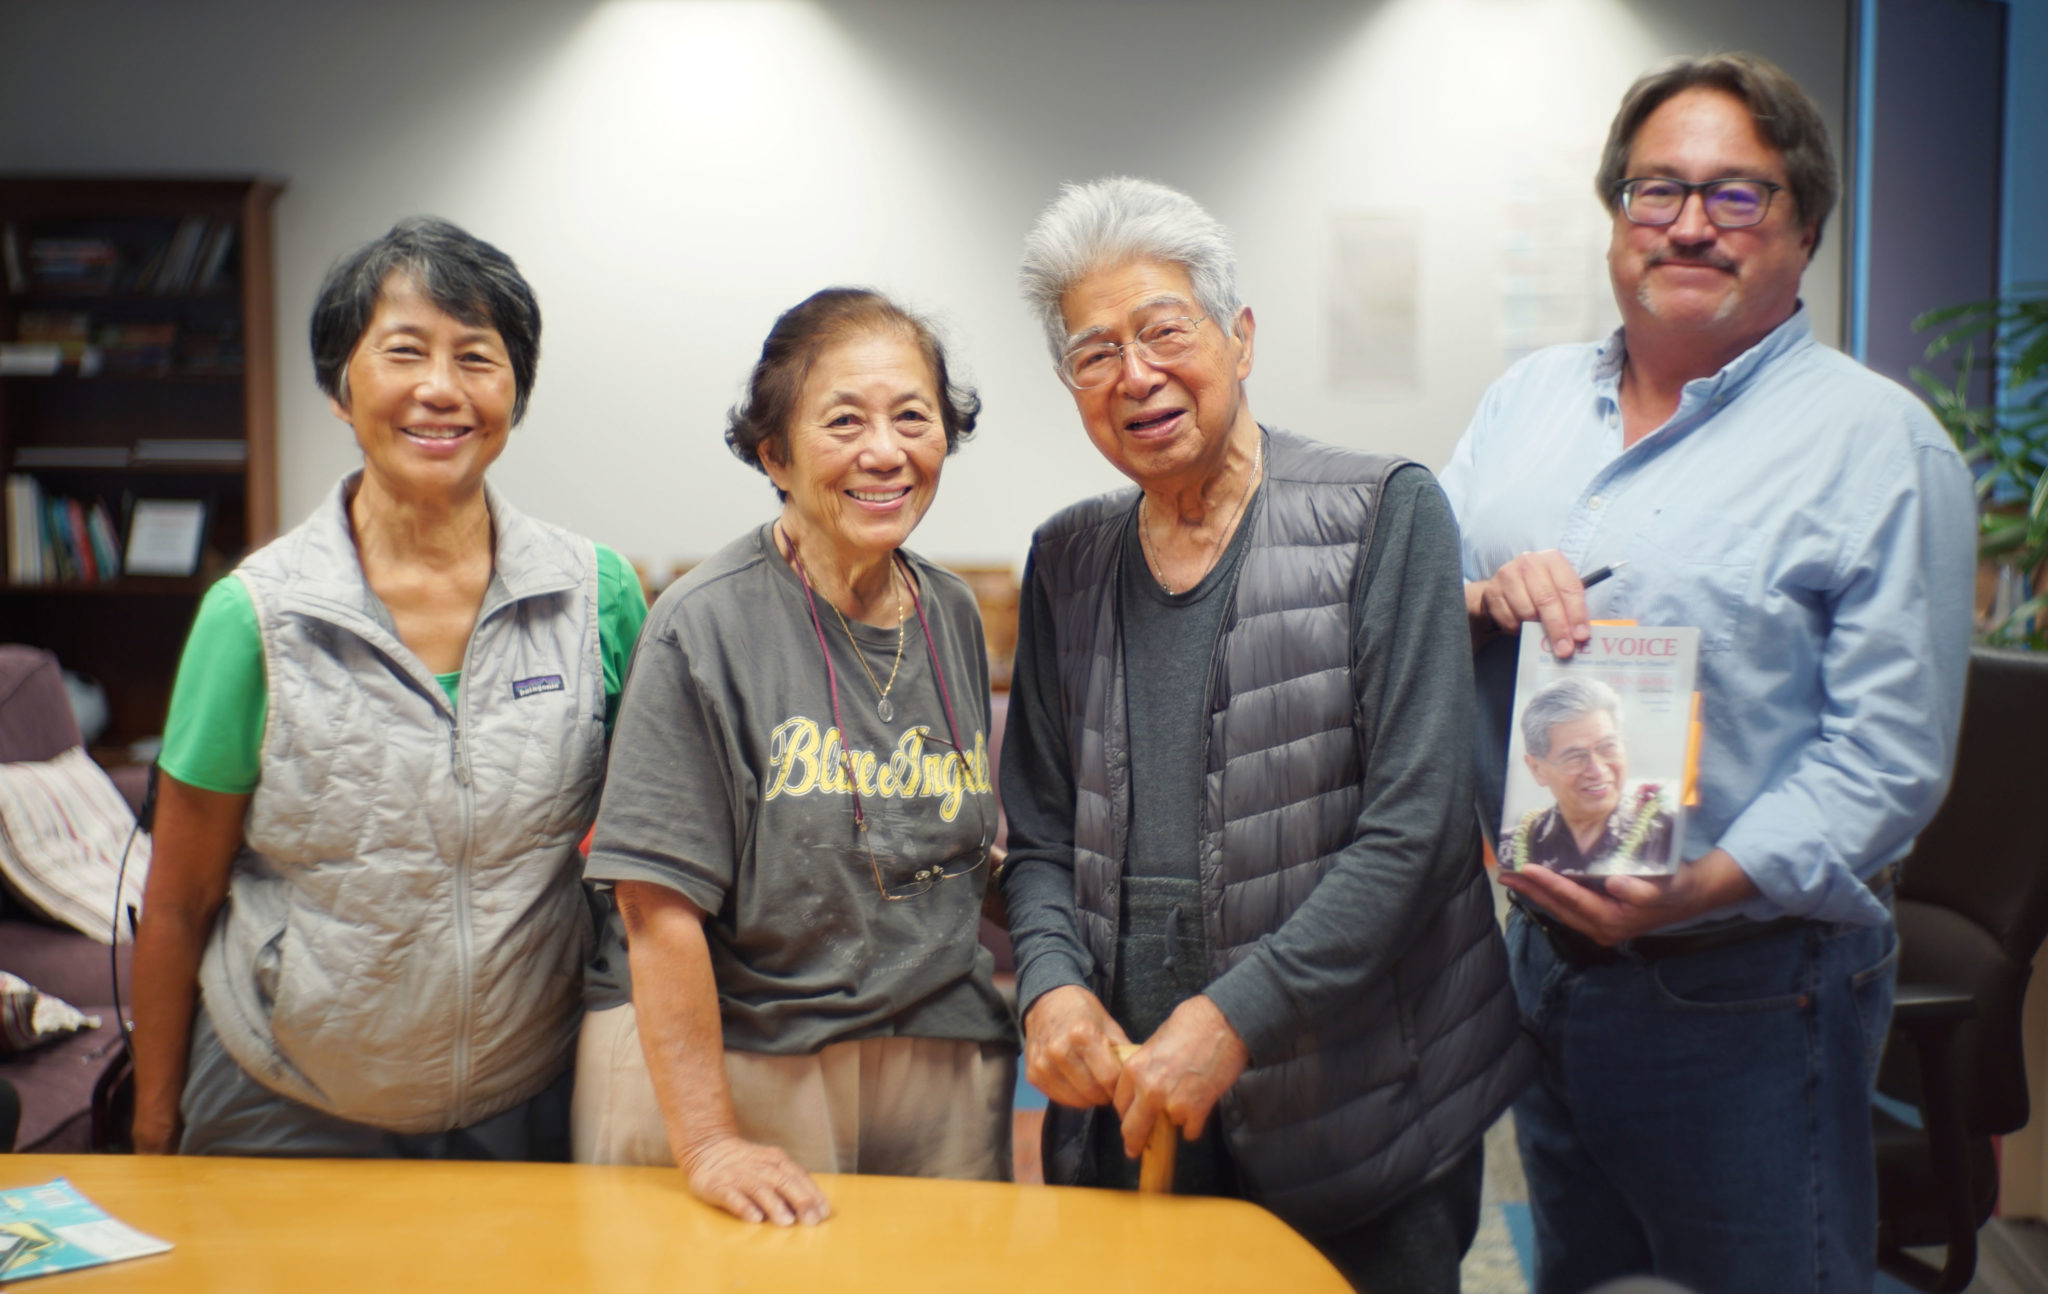 Left, Sen Akaka daughter Millannie Akaka Mattson, wife Millie Akaka, Sen Daniel Akaka and right, Chad Blair.